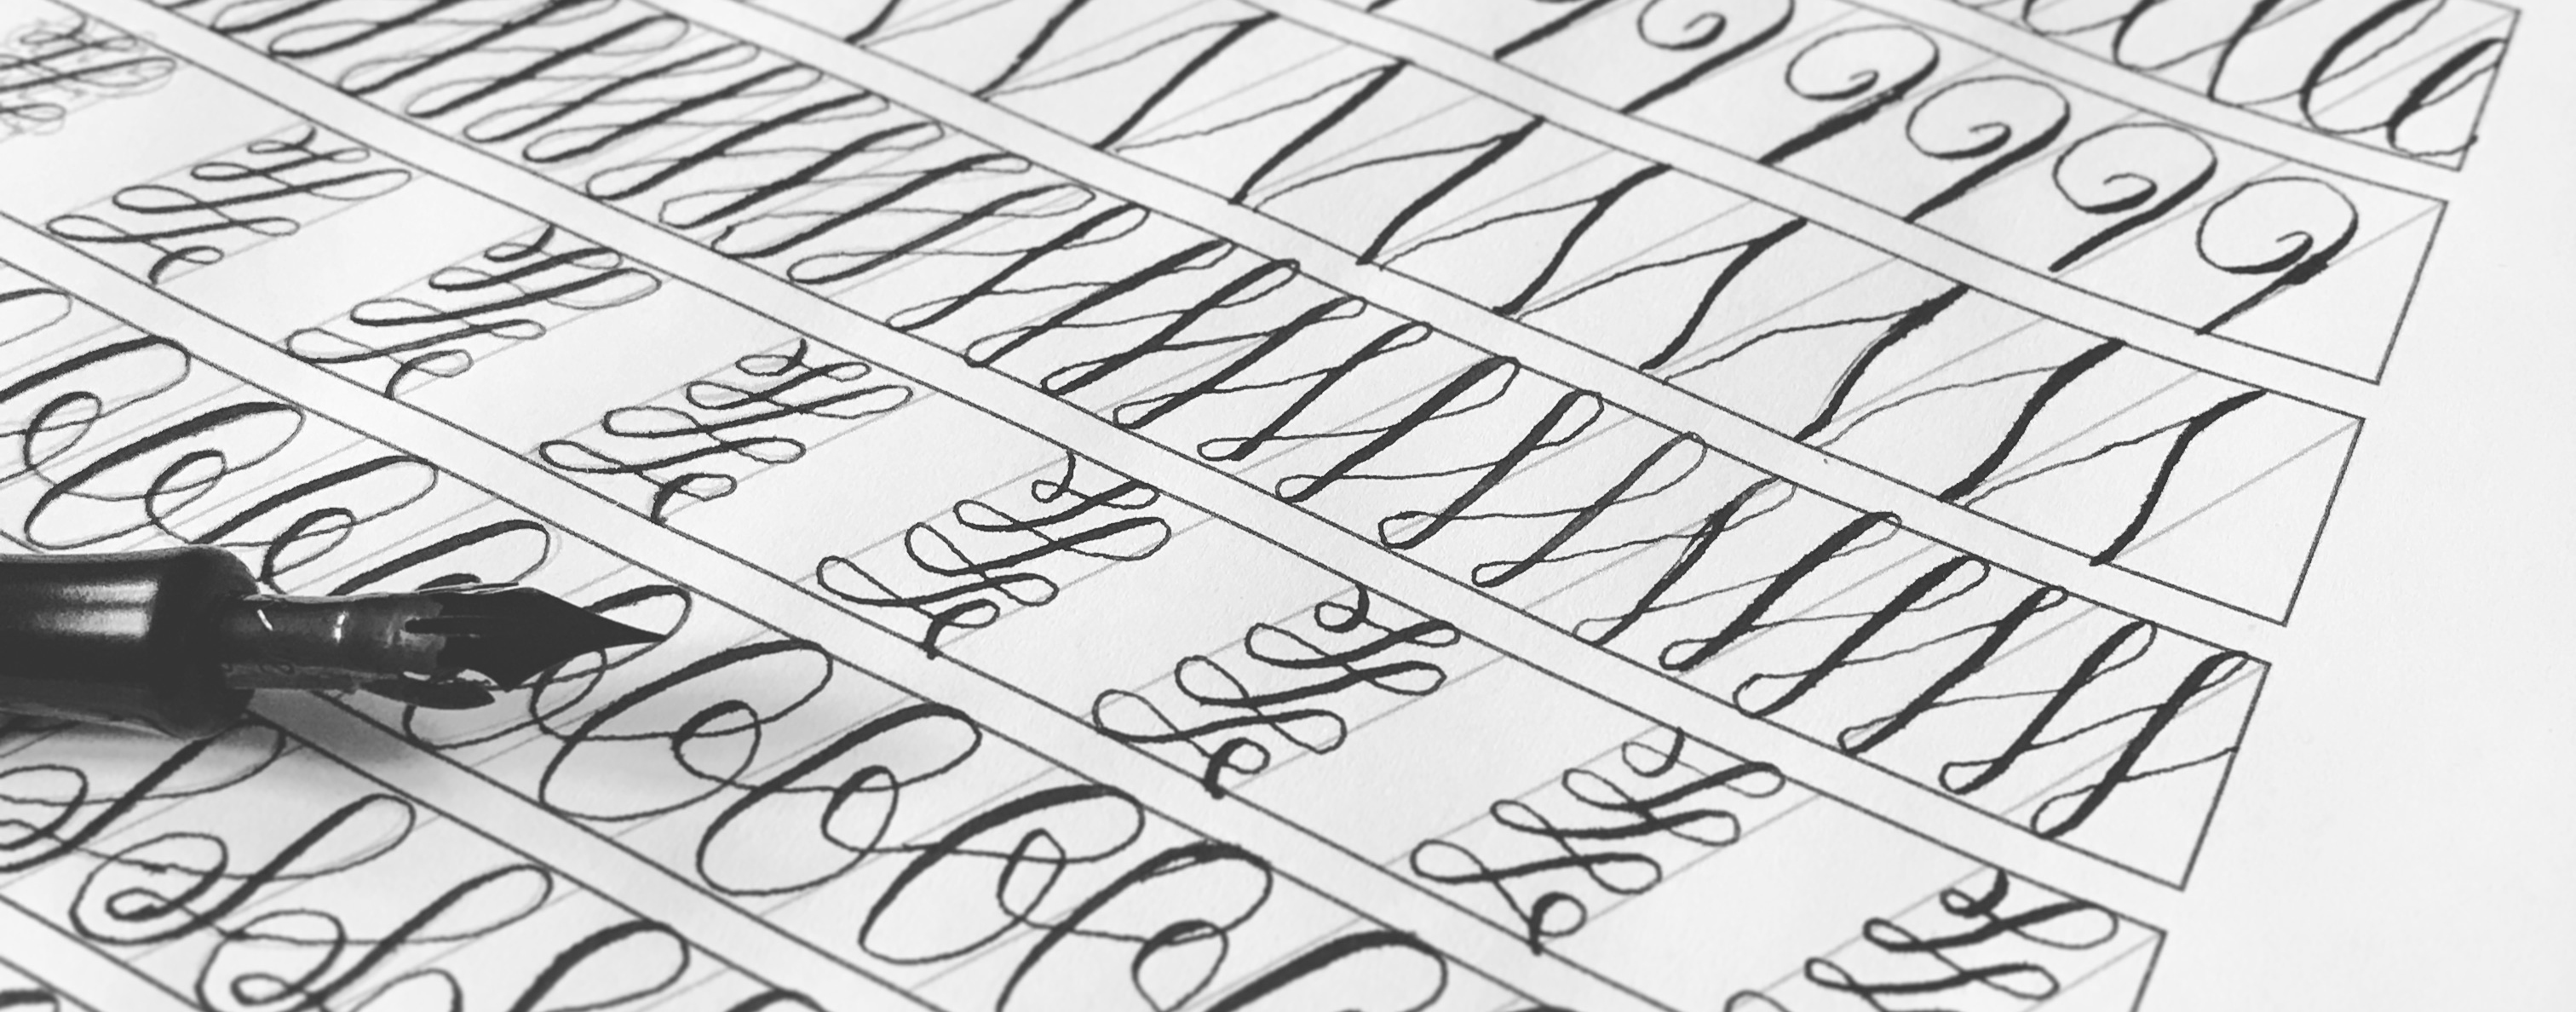 Guide To My Favorite Calligraphy Resources At Proof